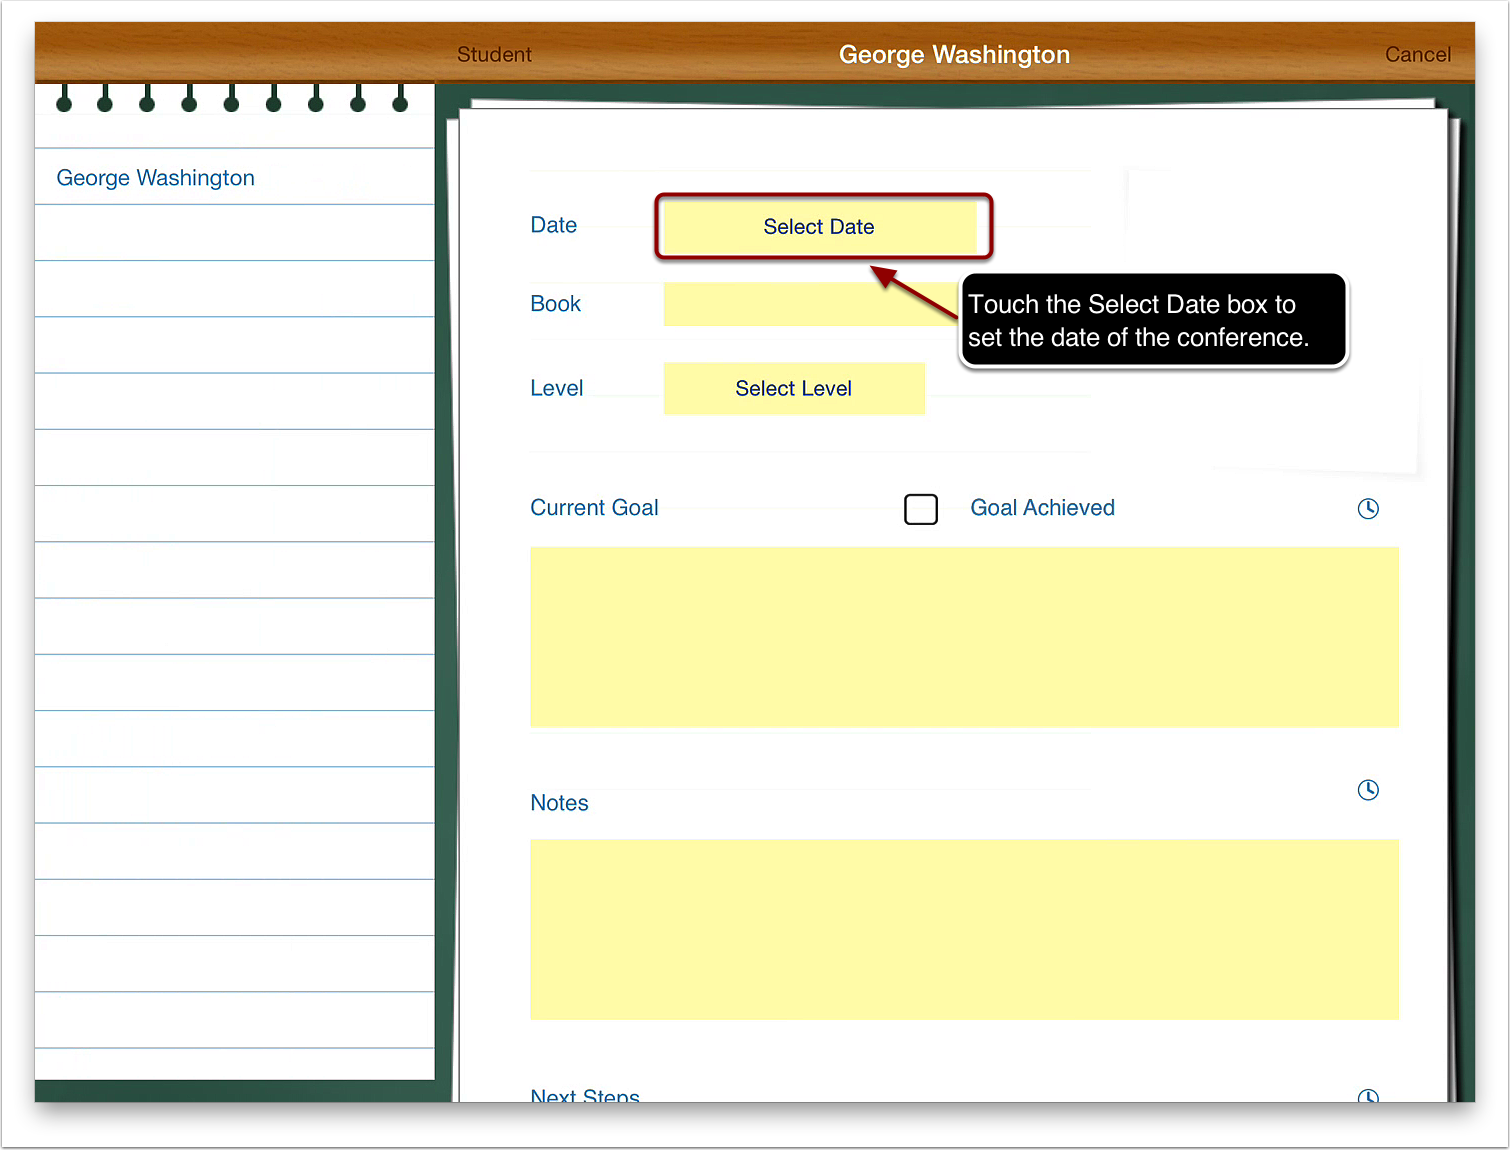 3. Touch the Select Date box to set the date of the conference.